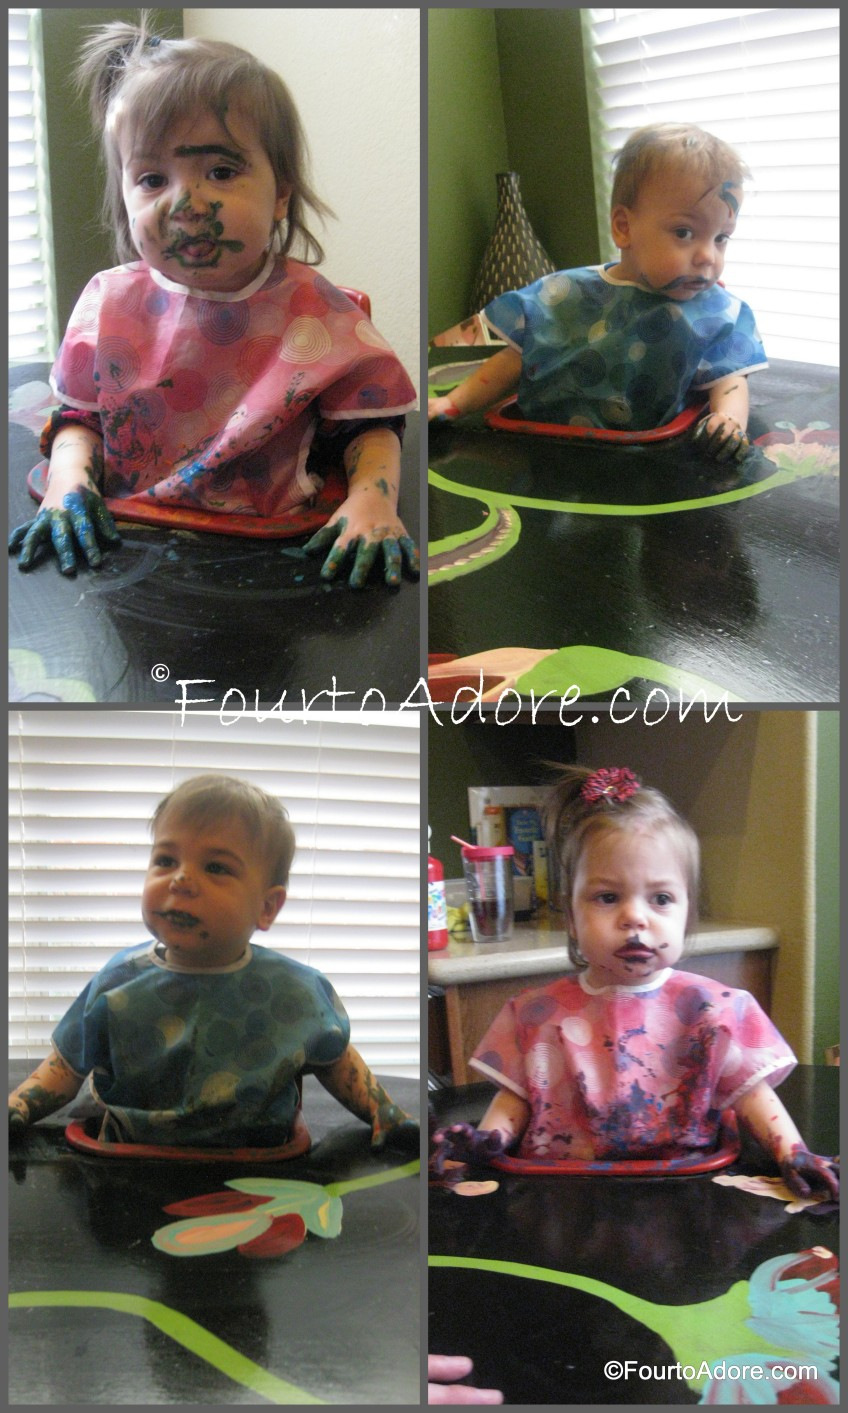 This is how everyone looked after painting their respective masterpieces.  I believe Rylin was channeling Frida Kahlo.